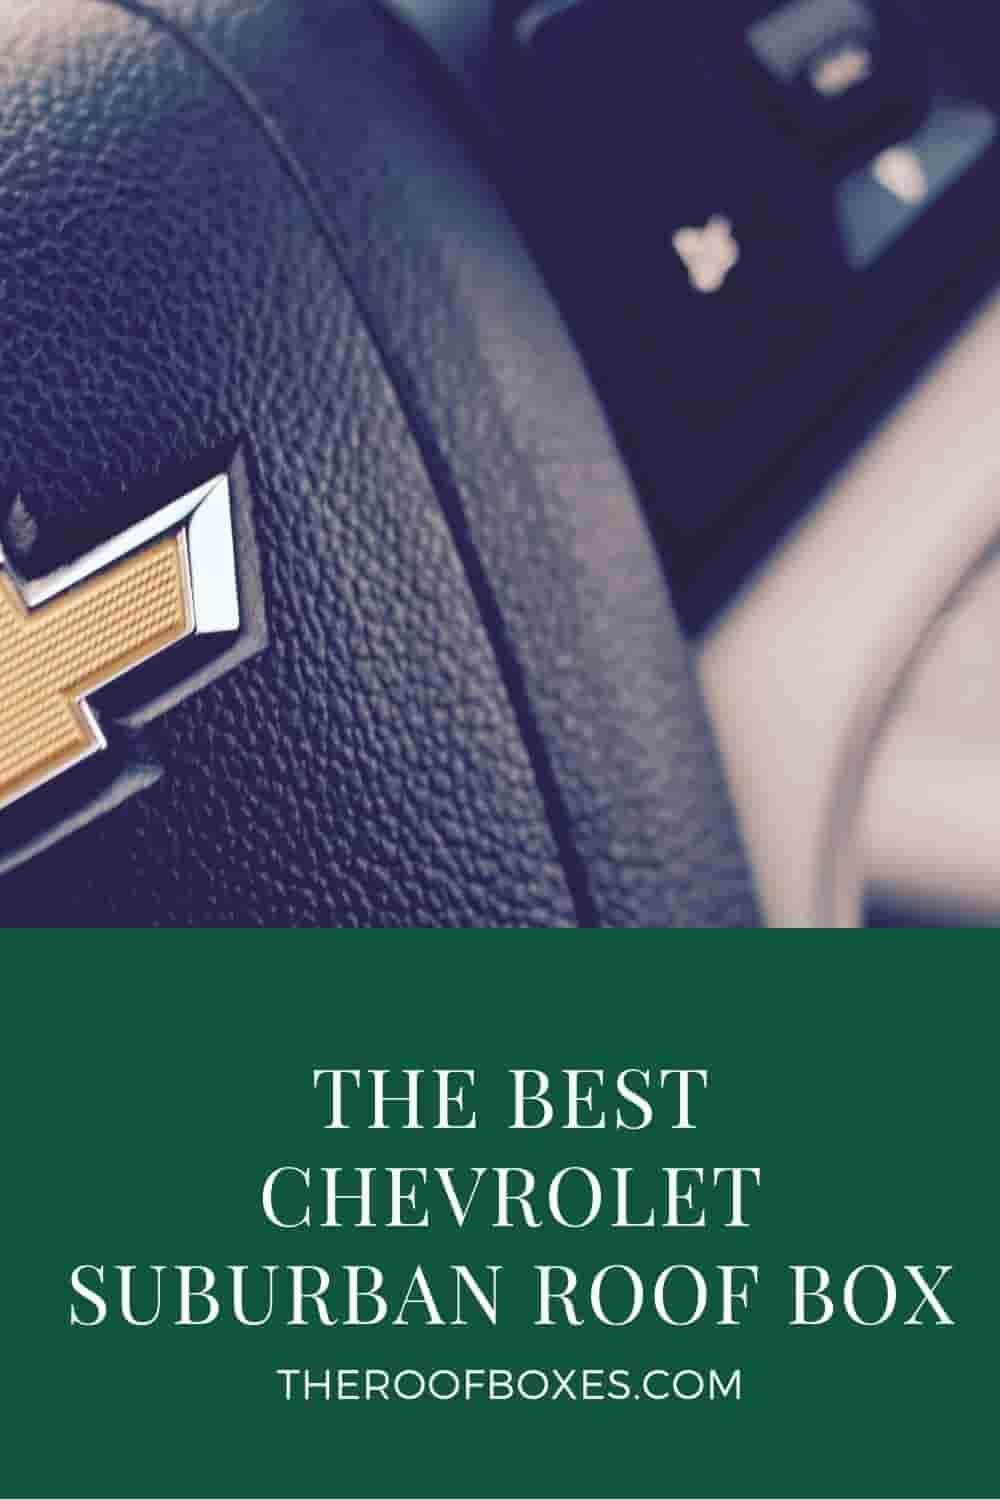 Roof Box for Chevrolet Suburban – Reviews and Comparison